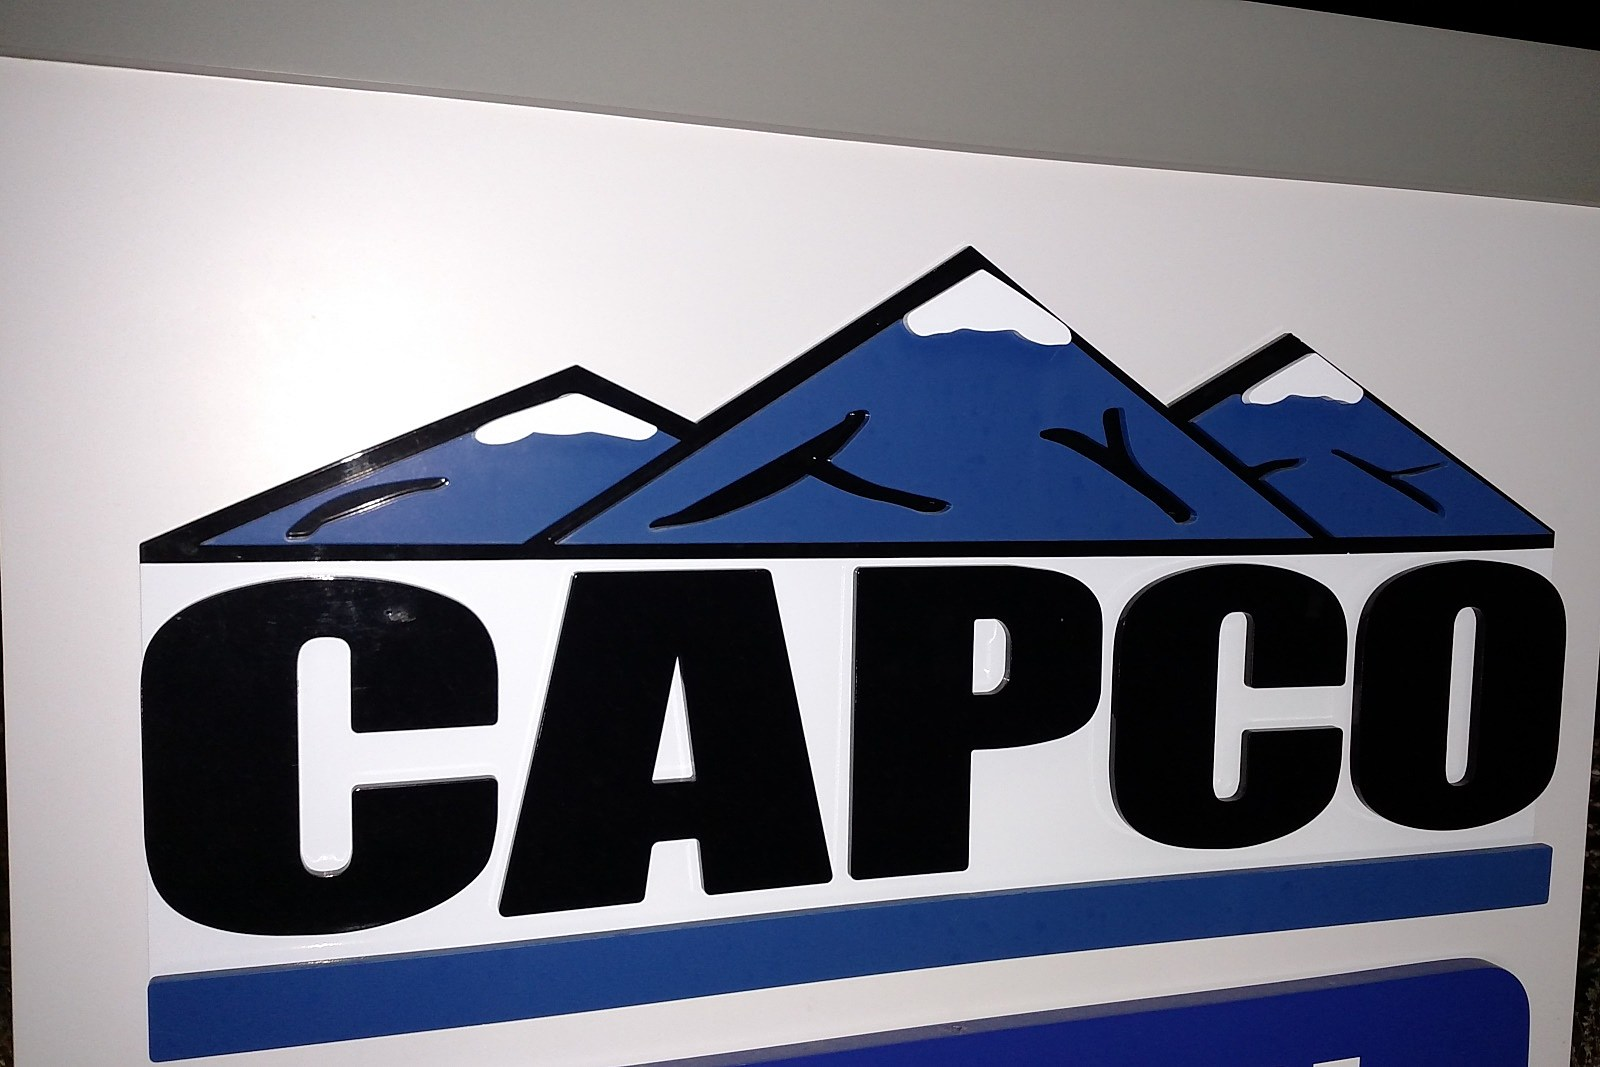 Capco Raided by Feds